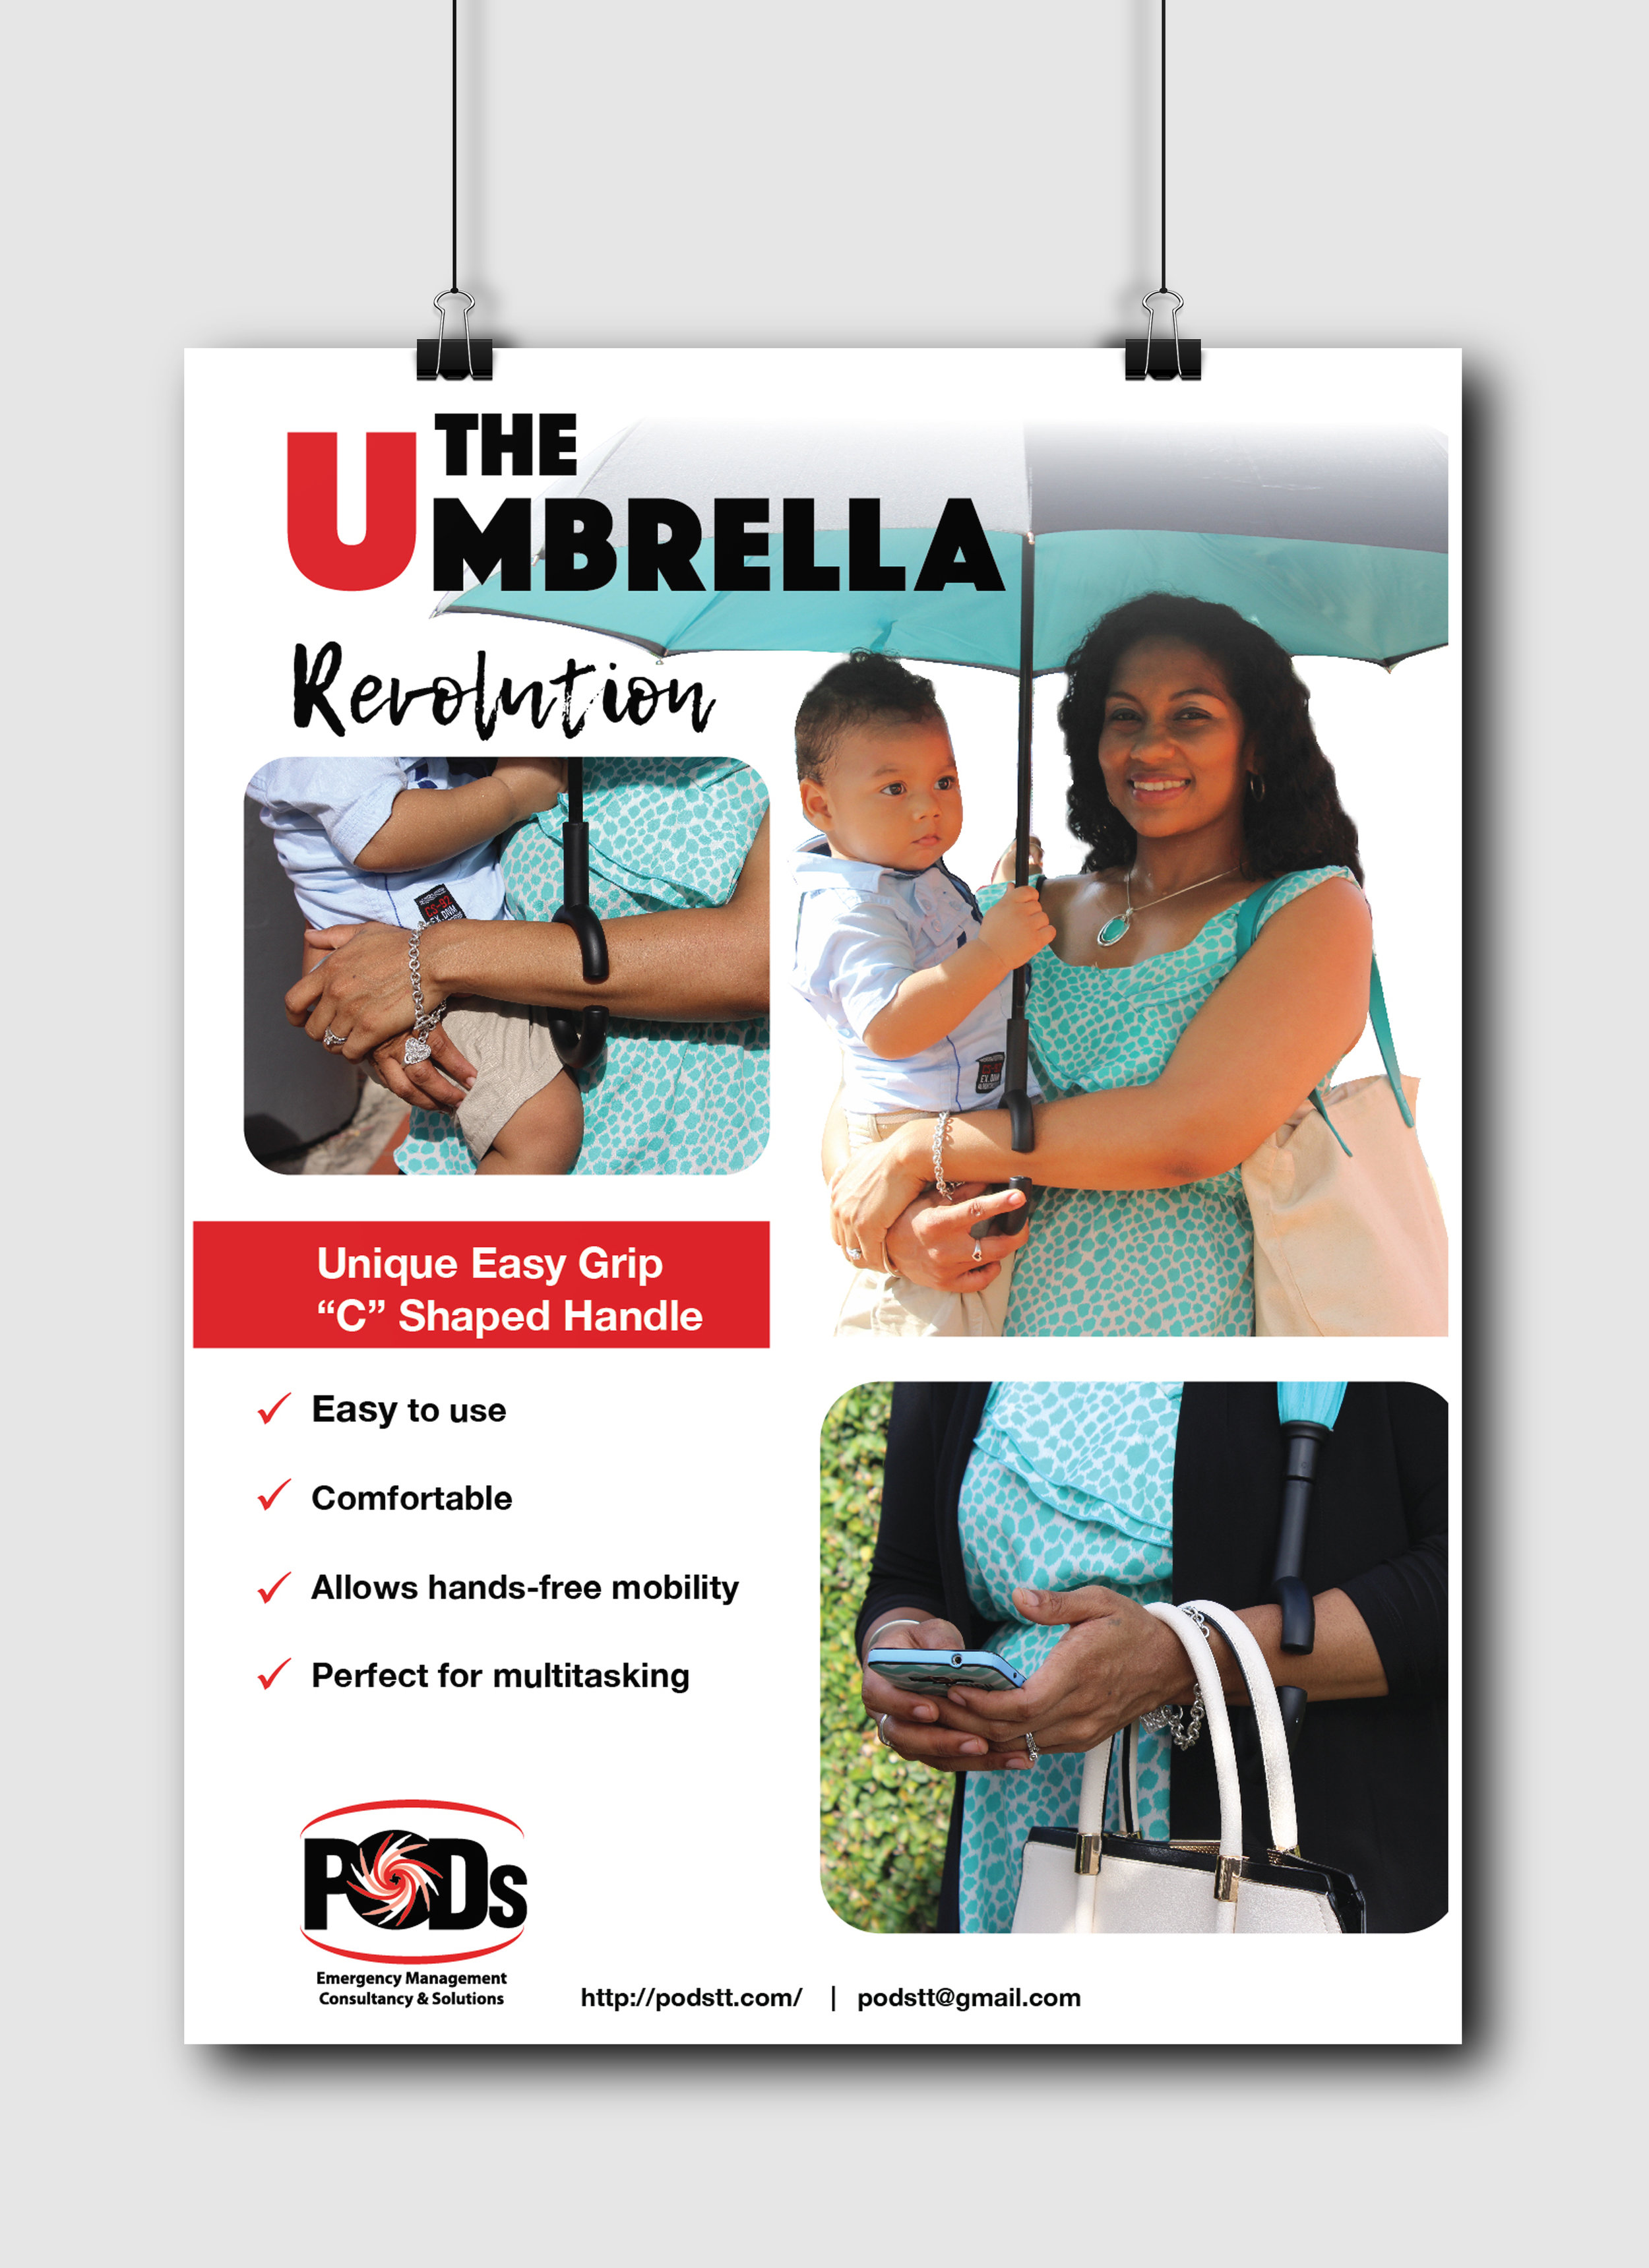 The Umbrella Revolution Flyers - Client: PODSDescription: Design and Layout four (4) flyers for the promotion of the newest product by PODS. Client requested a very simple, clean design with clear photo imagery of the product and its use as well as brief, clear, informational points.Year: 2017Photography provided by the client.